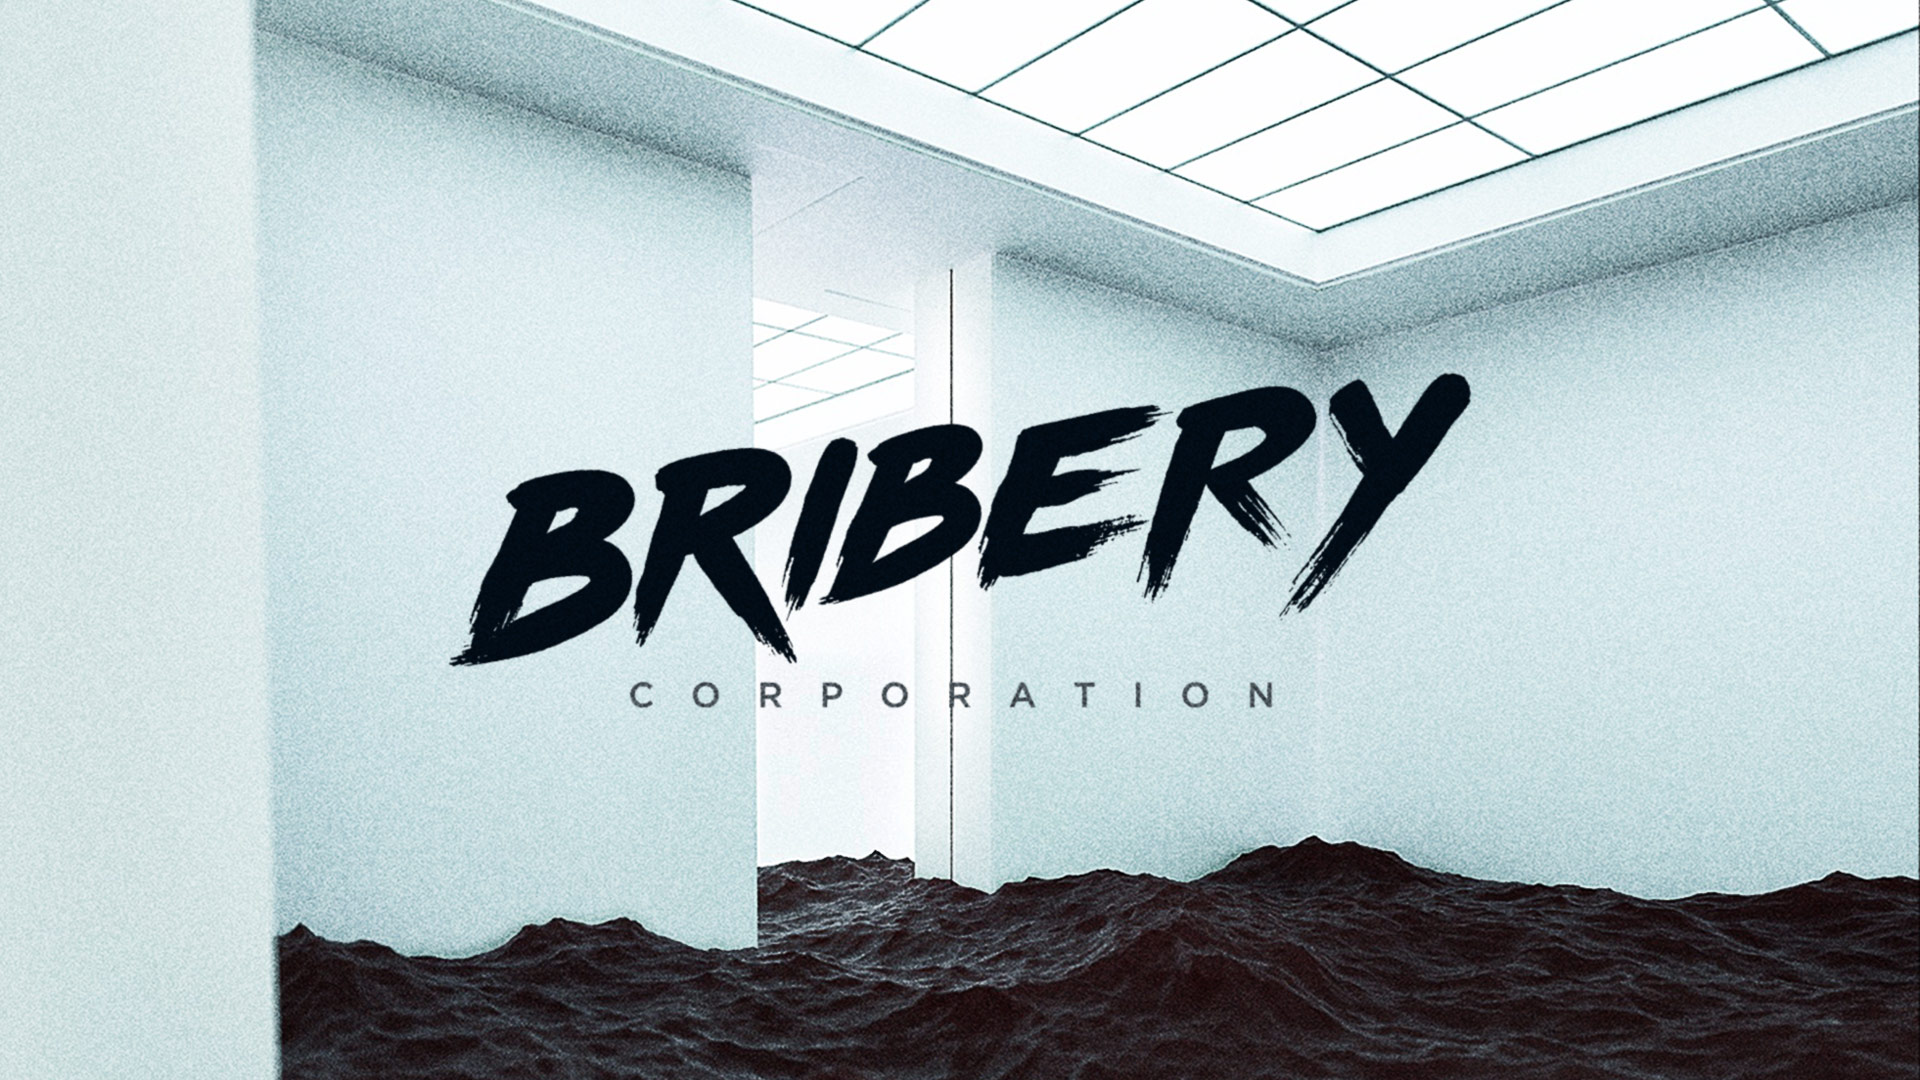 Bribery Corporation. 3D artwork designed by  Albert Albaladejo